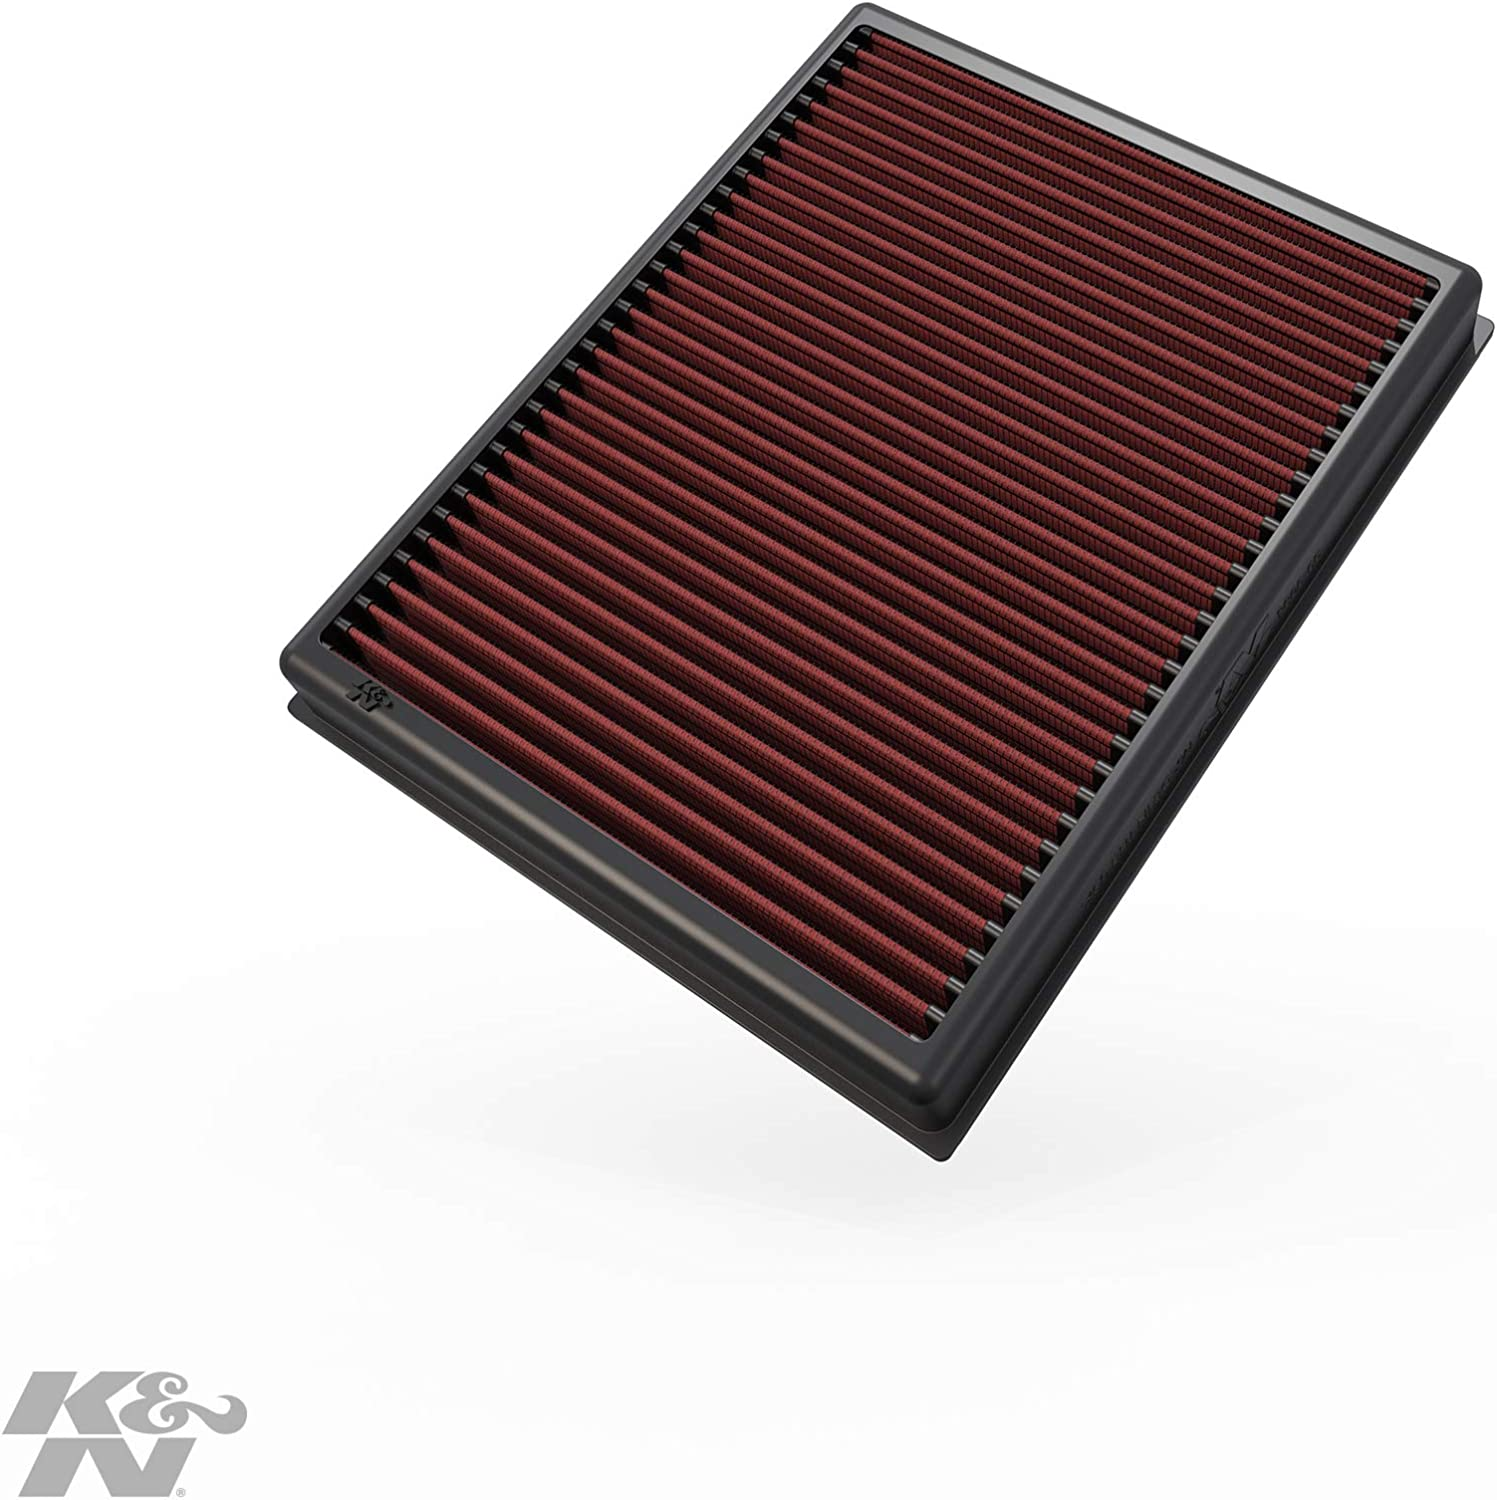 Performance K/&N Filters 33-2106-1 Air Filter For Sale